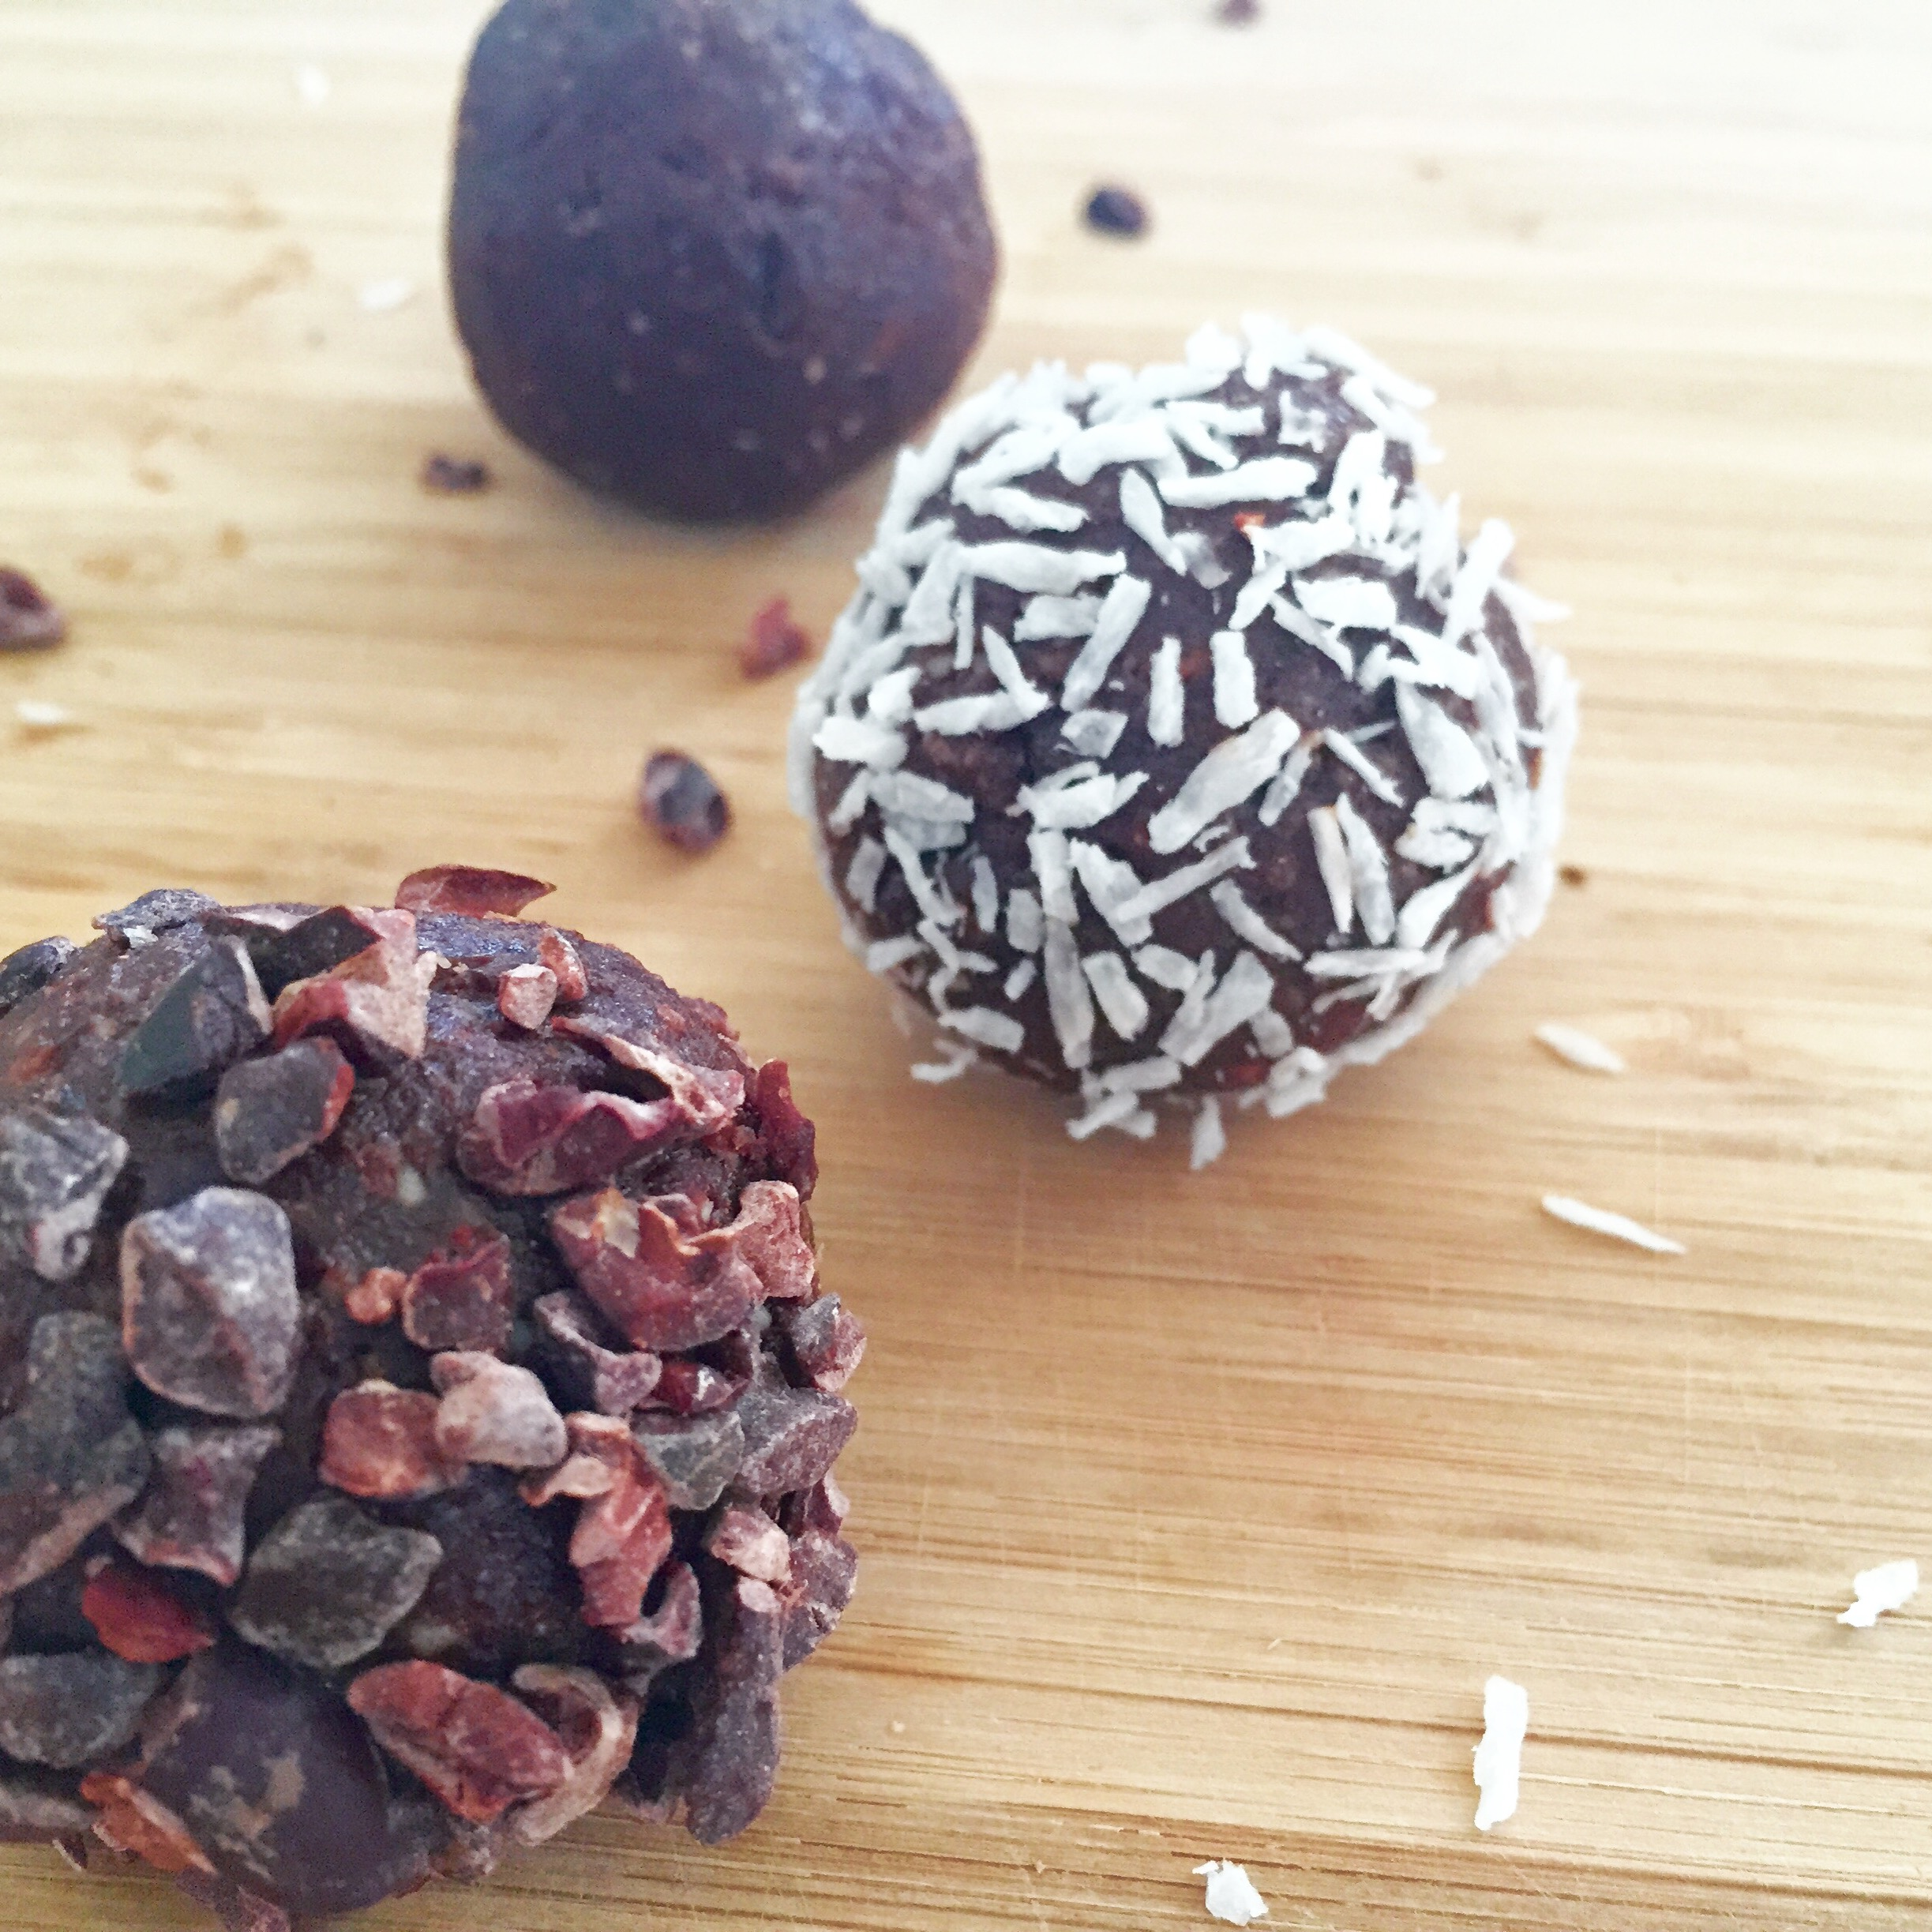 Chocolate Protein Brownie Bites by Kristine Thomas -getwelli.com - grain free, vegan, gluten free, no added sugar